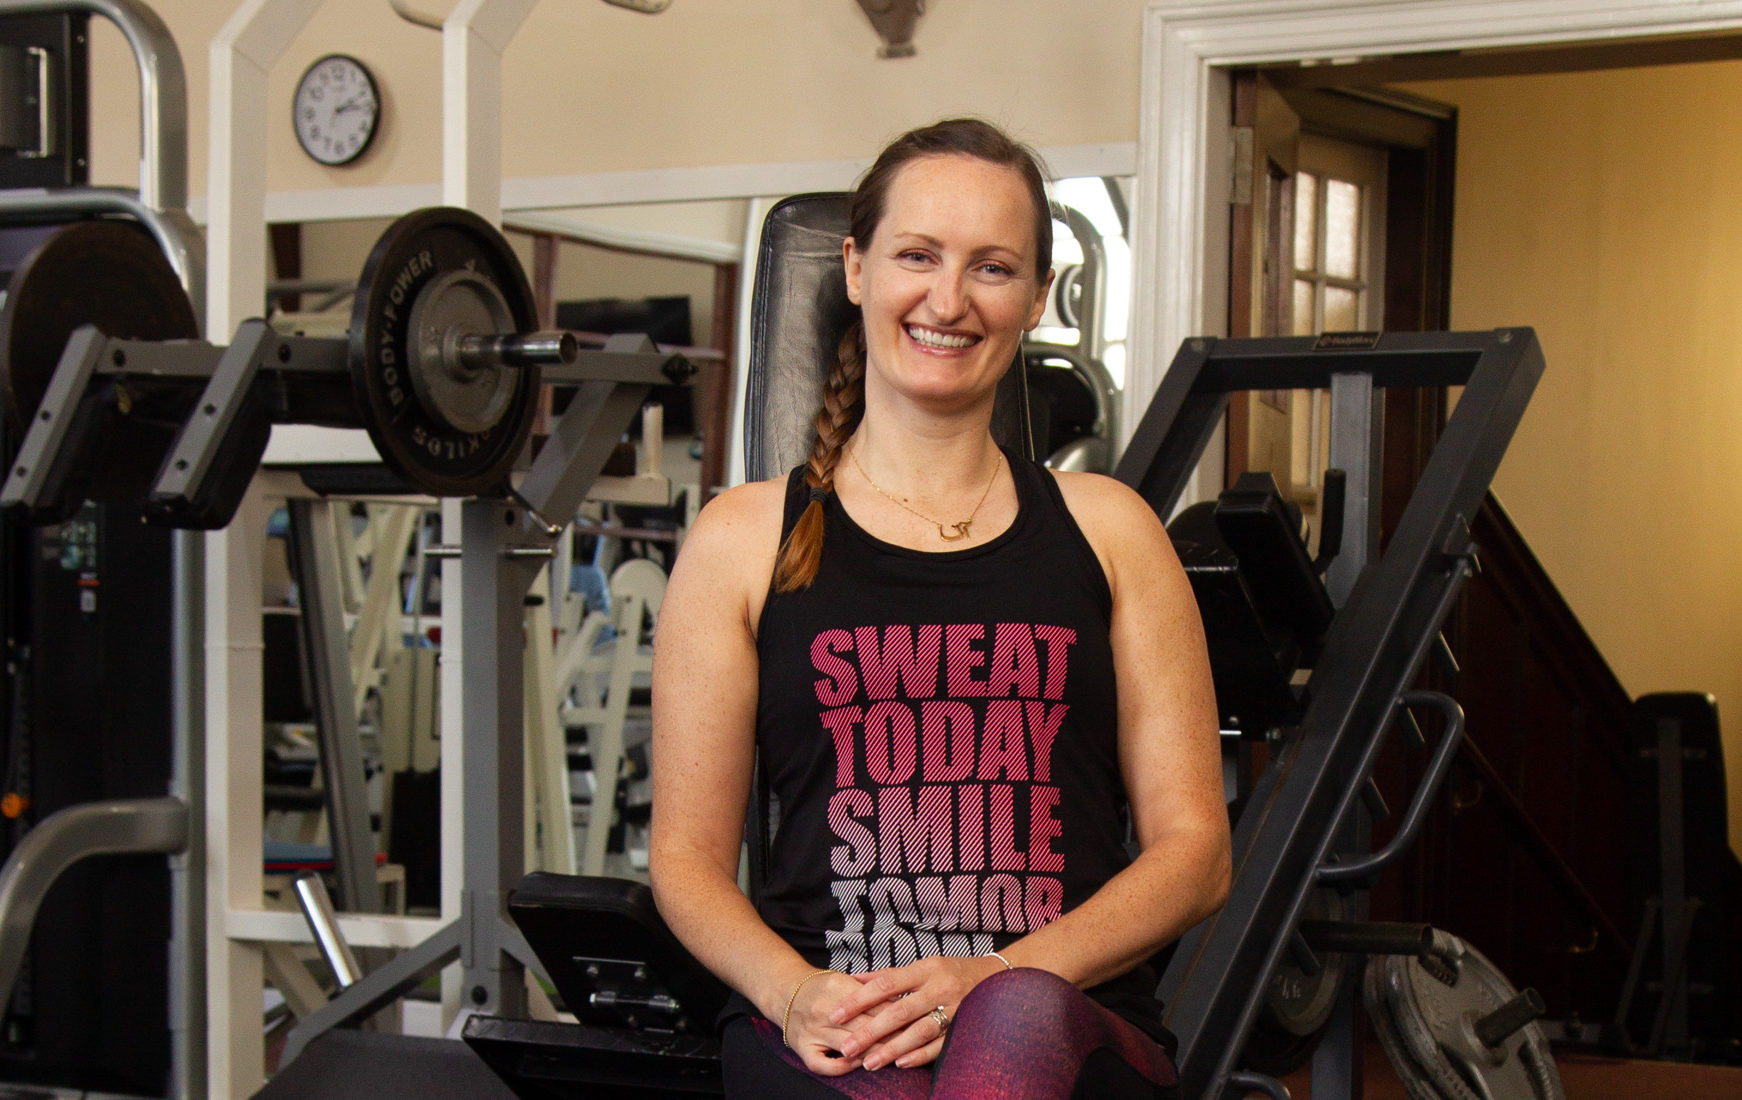 Anne now includes fitness in her daily routine after battling back to health.